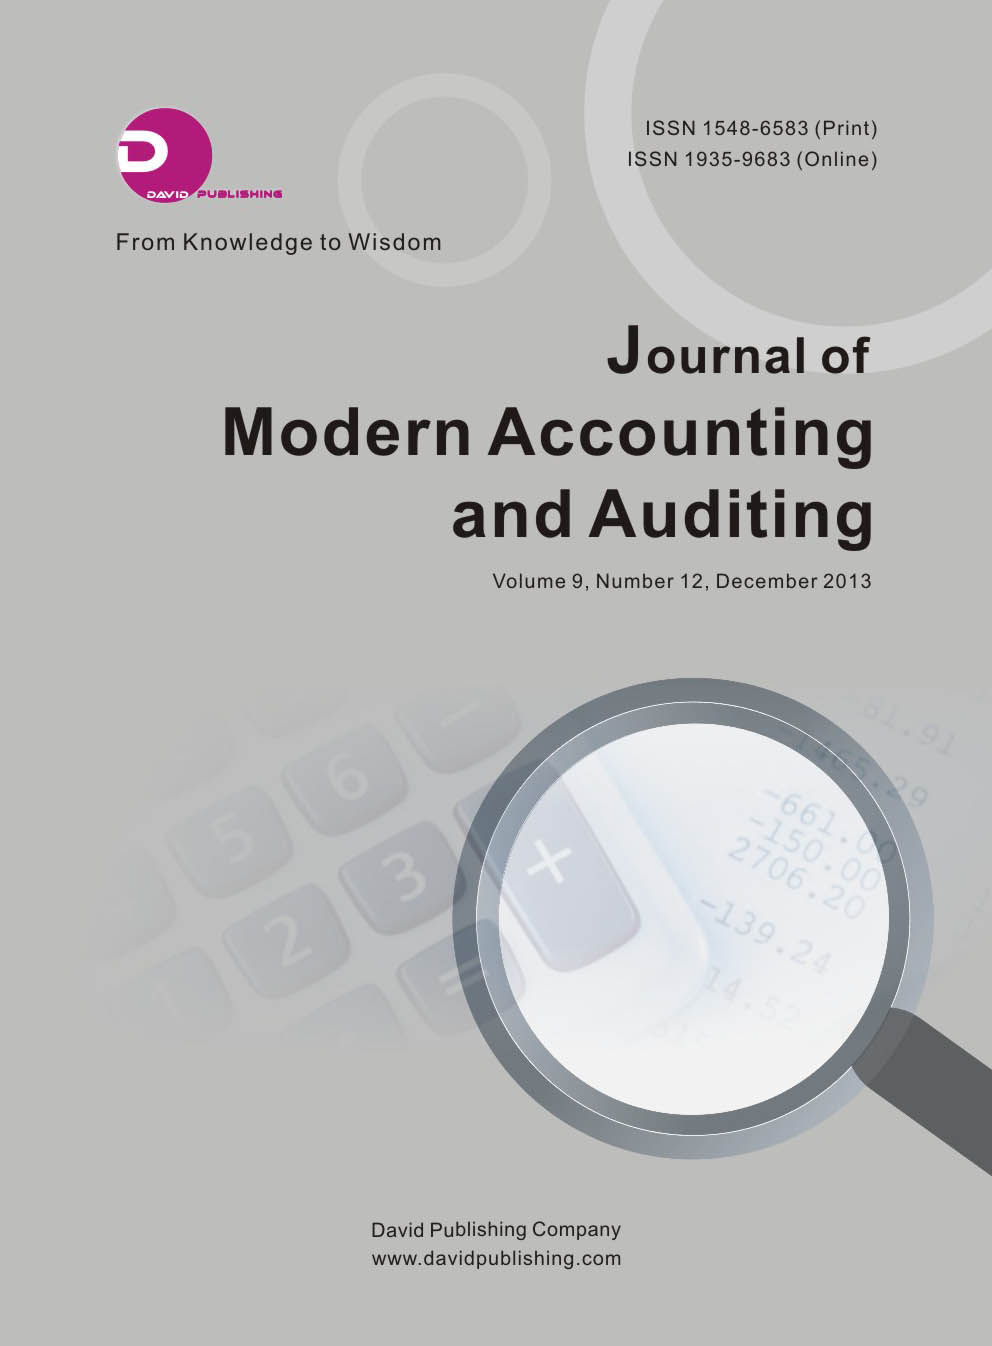 contemporary issues in auditing Current issues in auditing is devoted to advancing the dialogue between academics and practitioners on current issues facing the auditing practice community (eg, new opportunities and challenges, emerging areas, global developments, effects of new regulations or pronouncements, and effects of technological or market developments on audit processes.